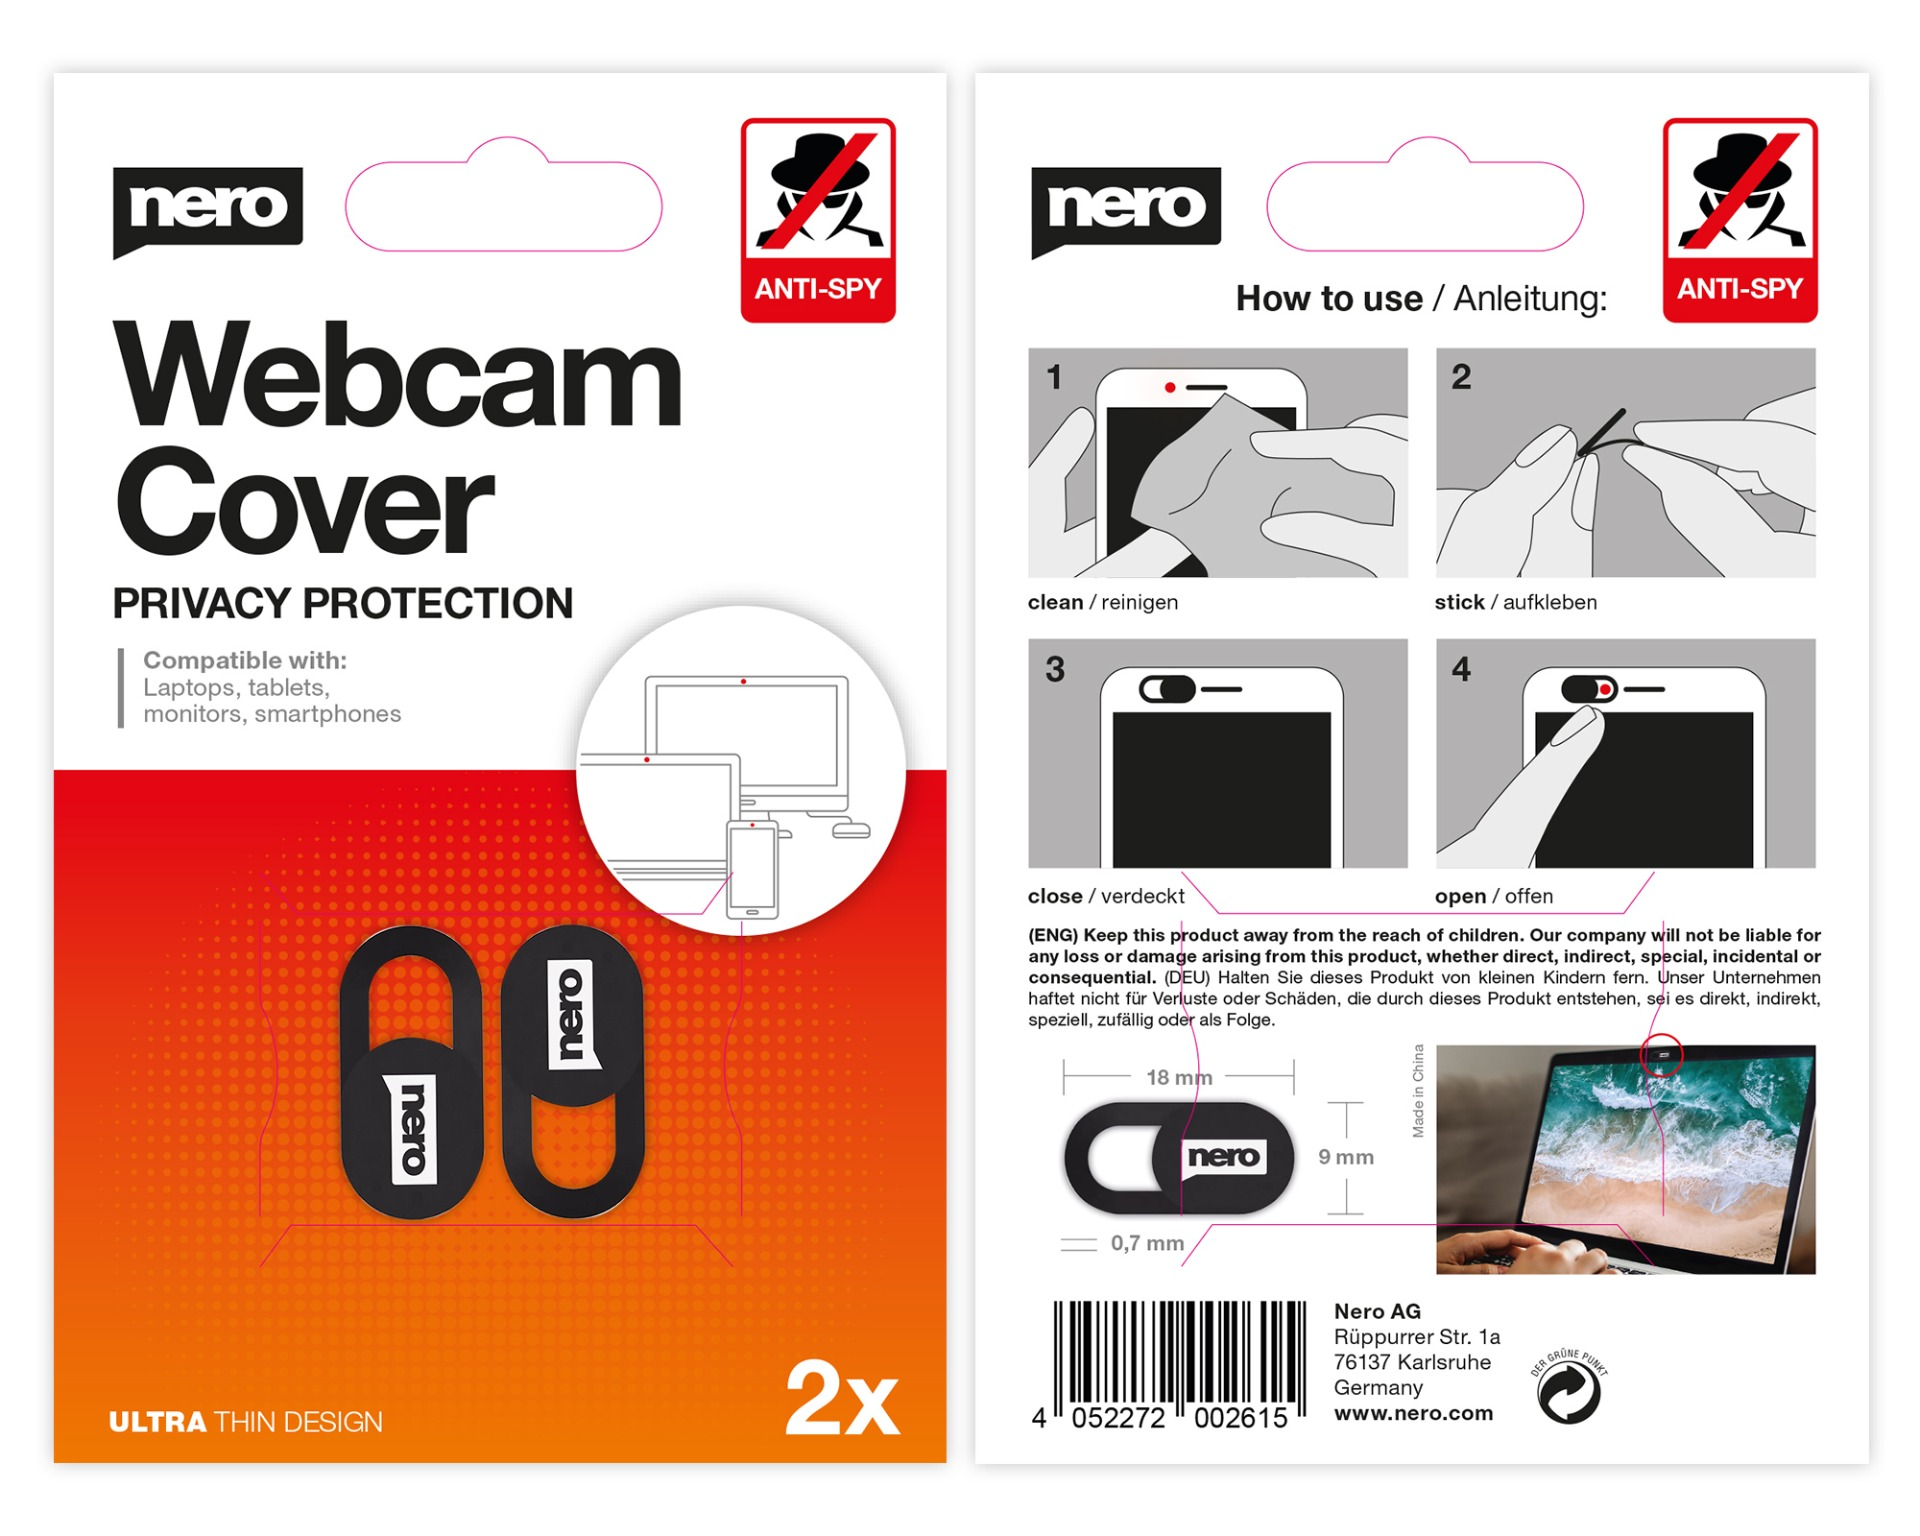 Nero Webcam Cover